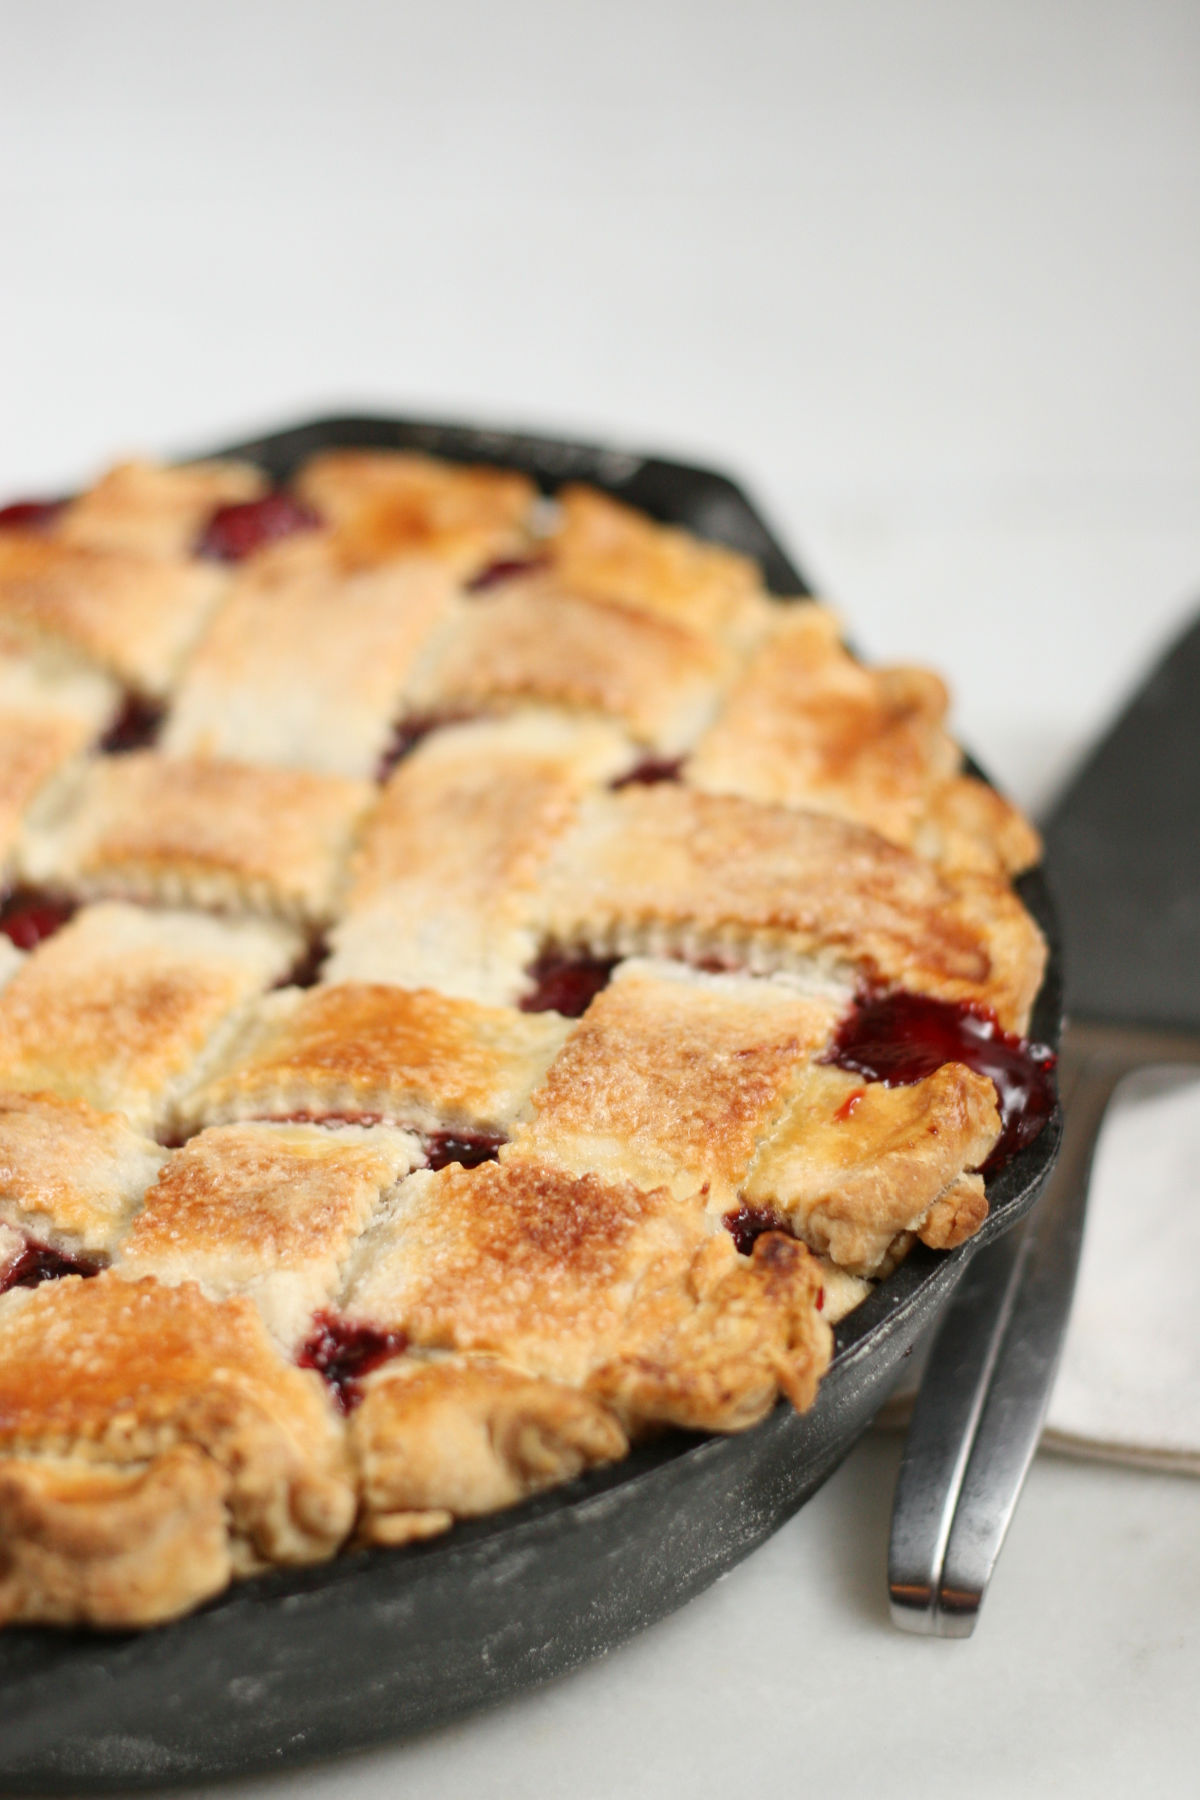 Cherry pie with weaved crust in cast iron skillet, cherry juices dripping out edge of pan.